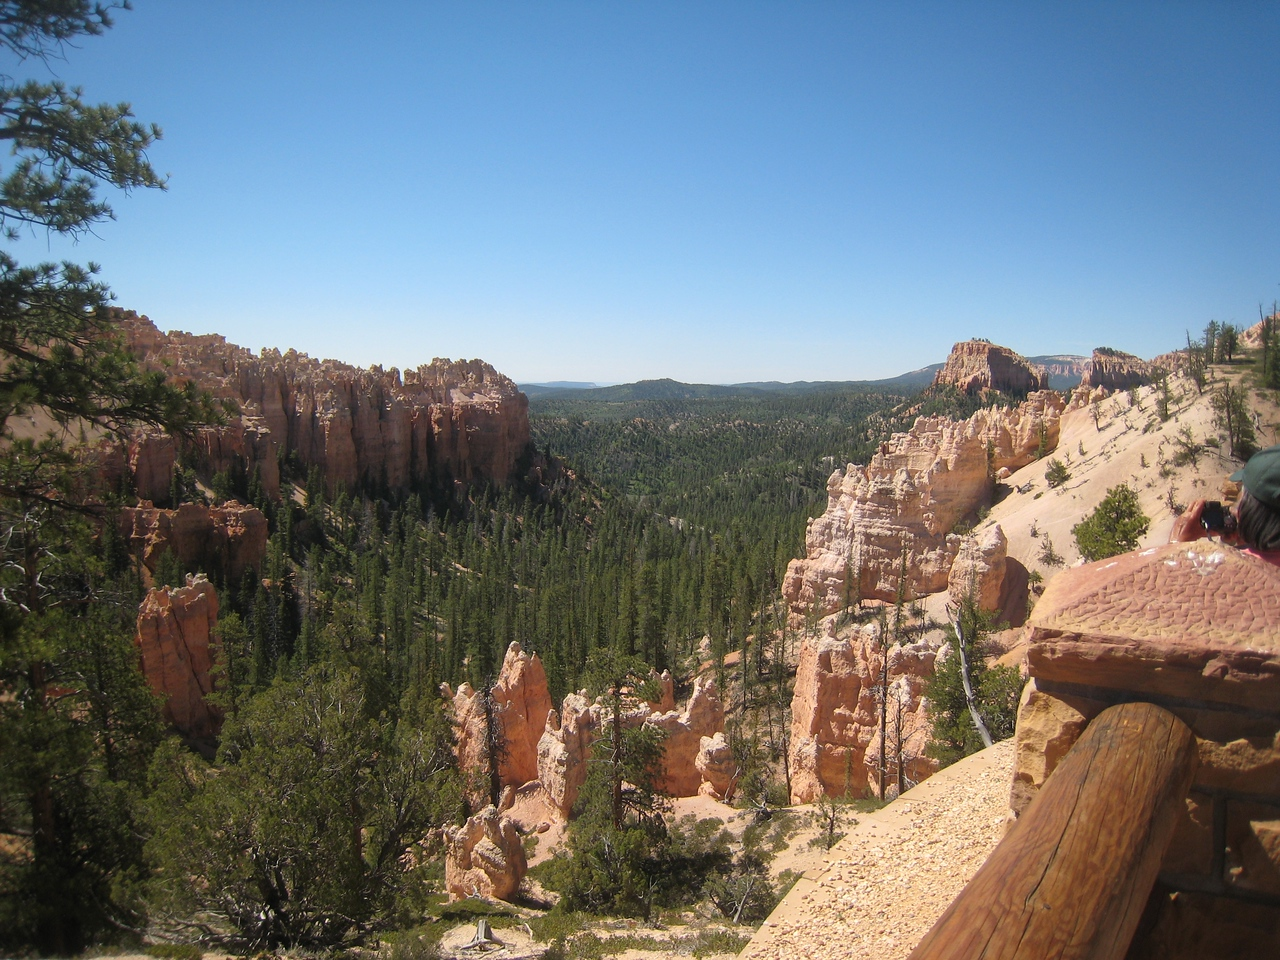 Bryce Canyon lives up to the hype.  Incredible scenery abounds.